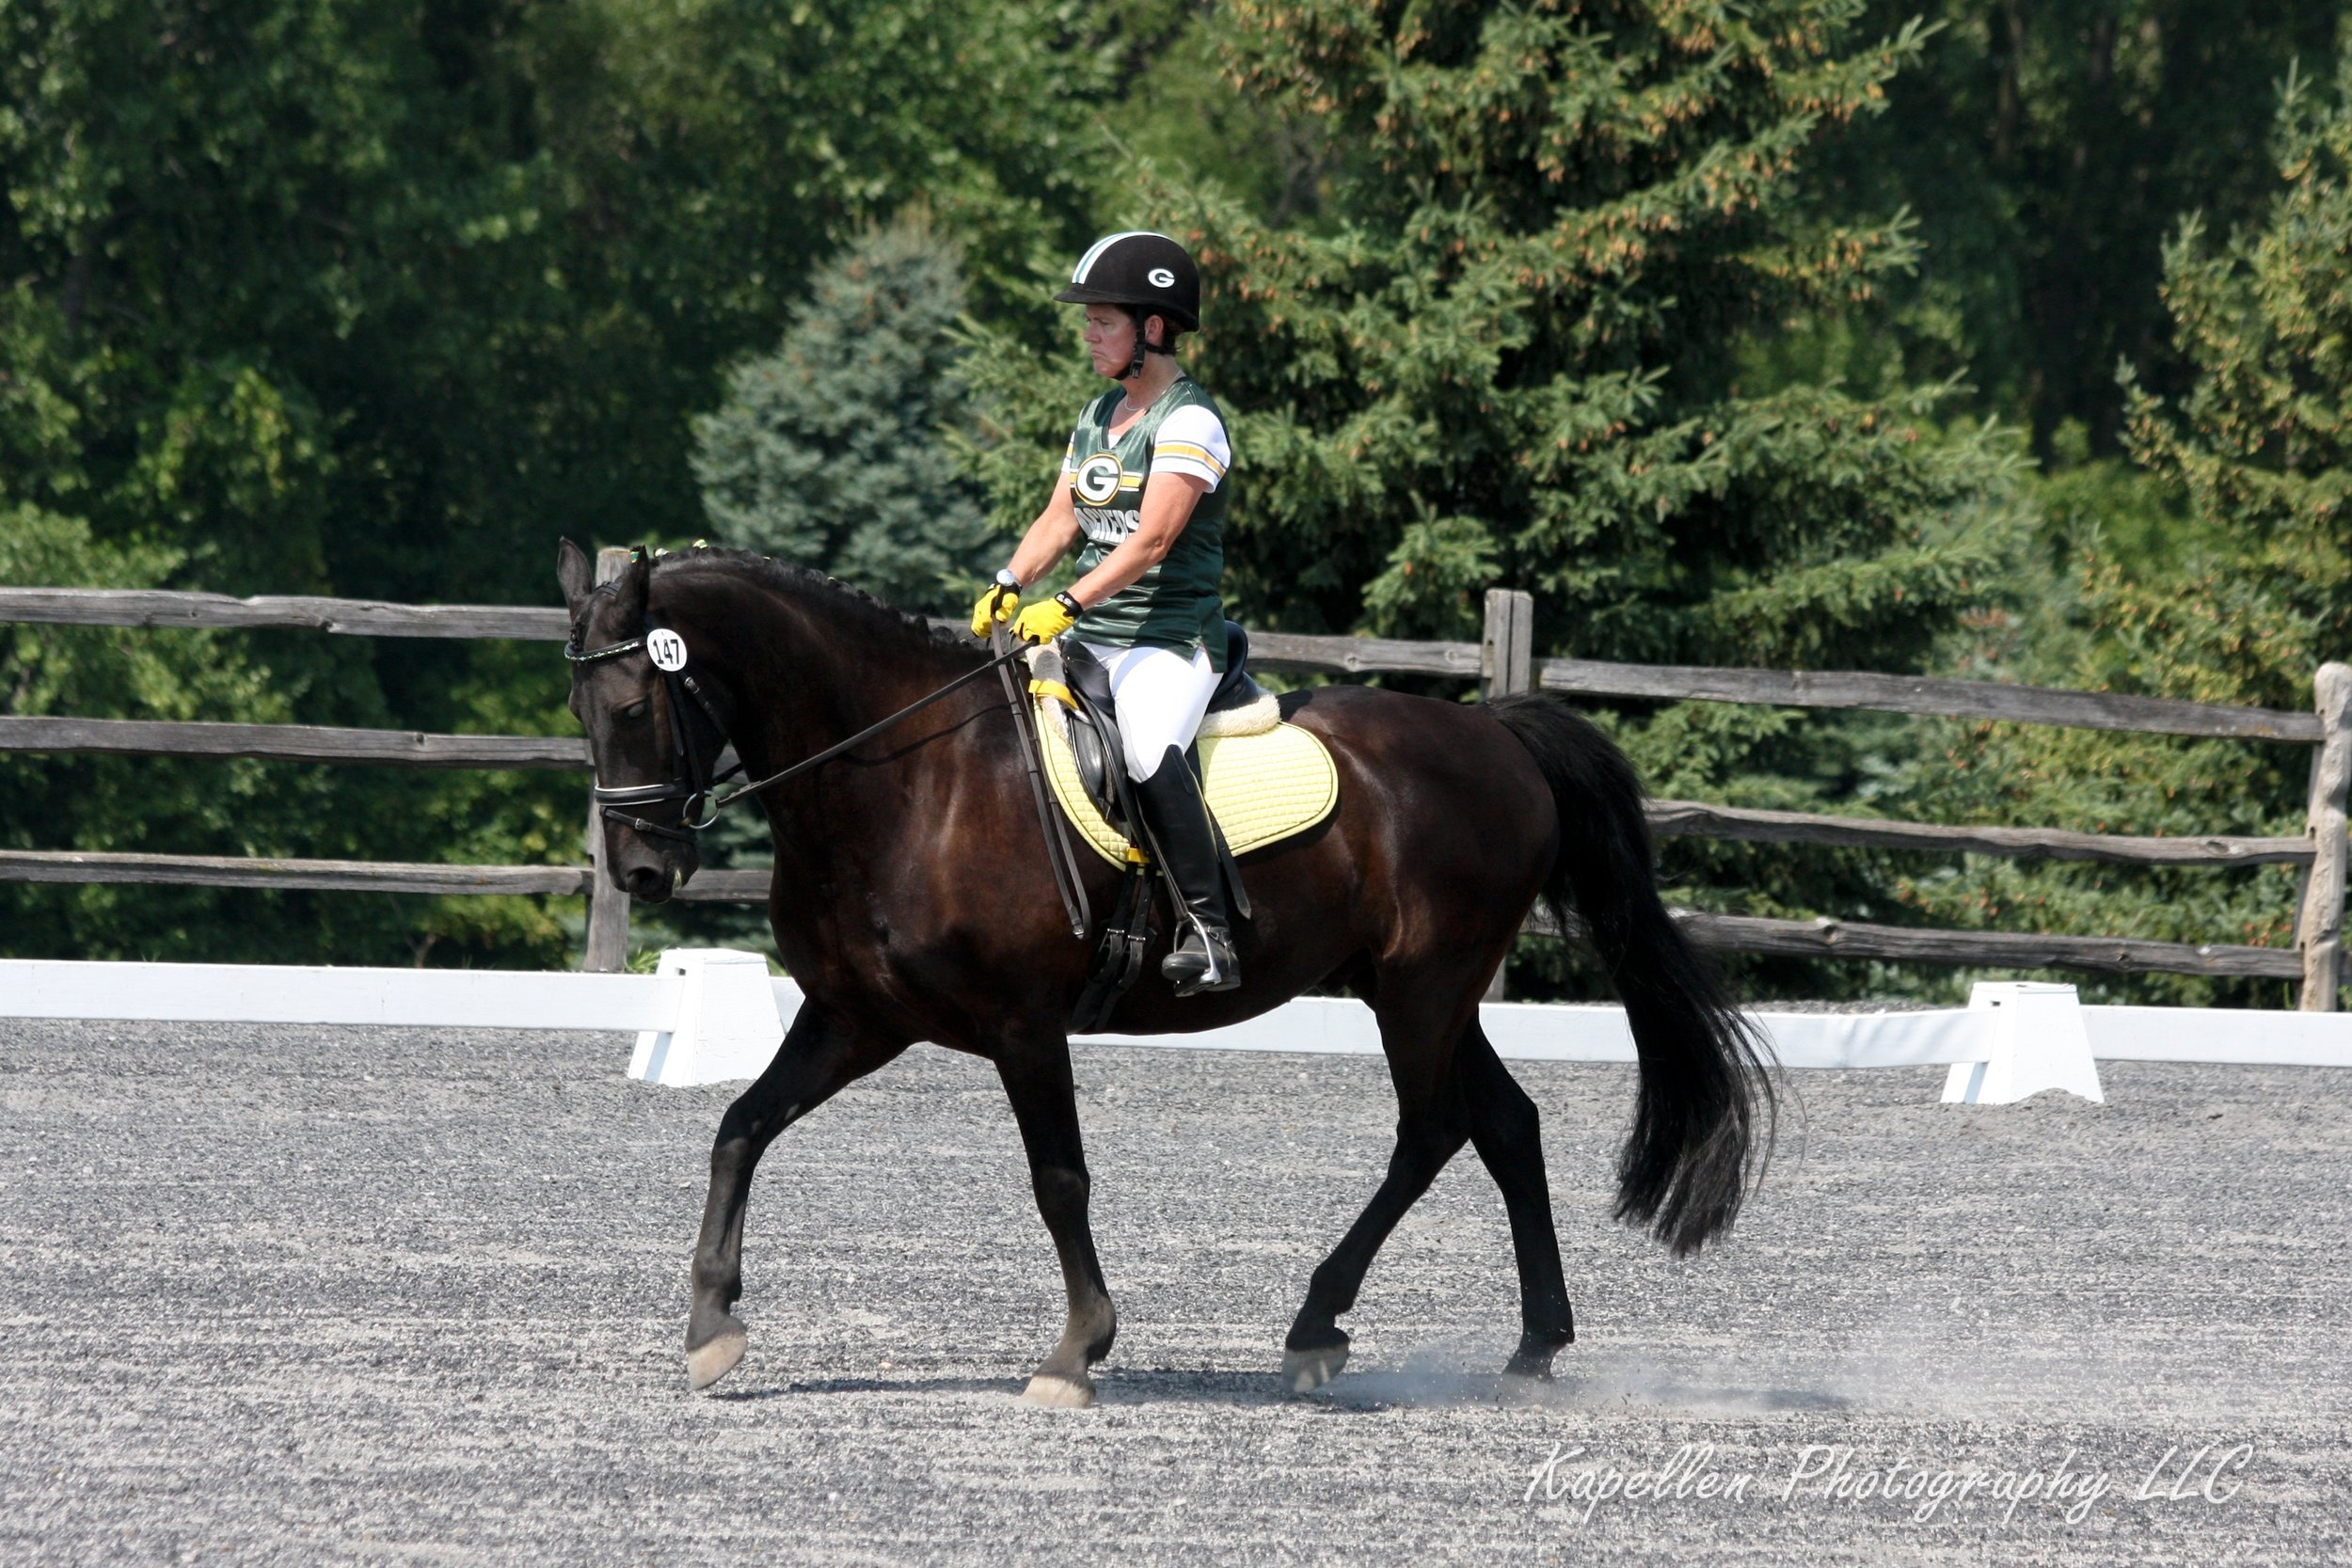 Lori Fisher - After years of showing dressage, Lori has recently become passionate about the Working Equitation sport. Photo showing Lori, a Green Bay Wisconsin native, riding to a musical freestyle she choreographed to football music.